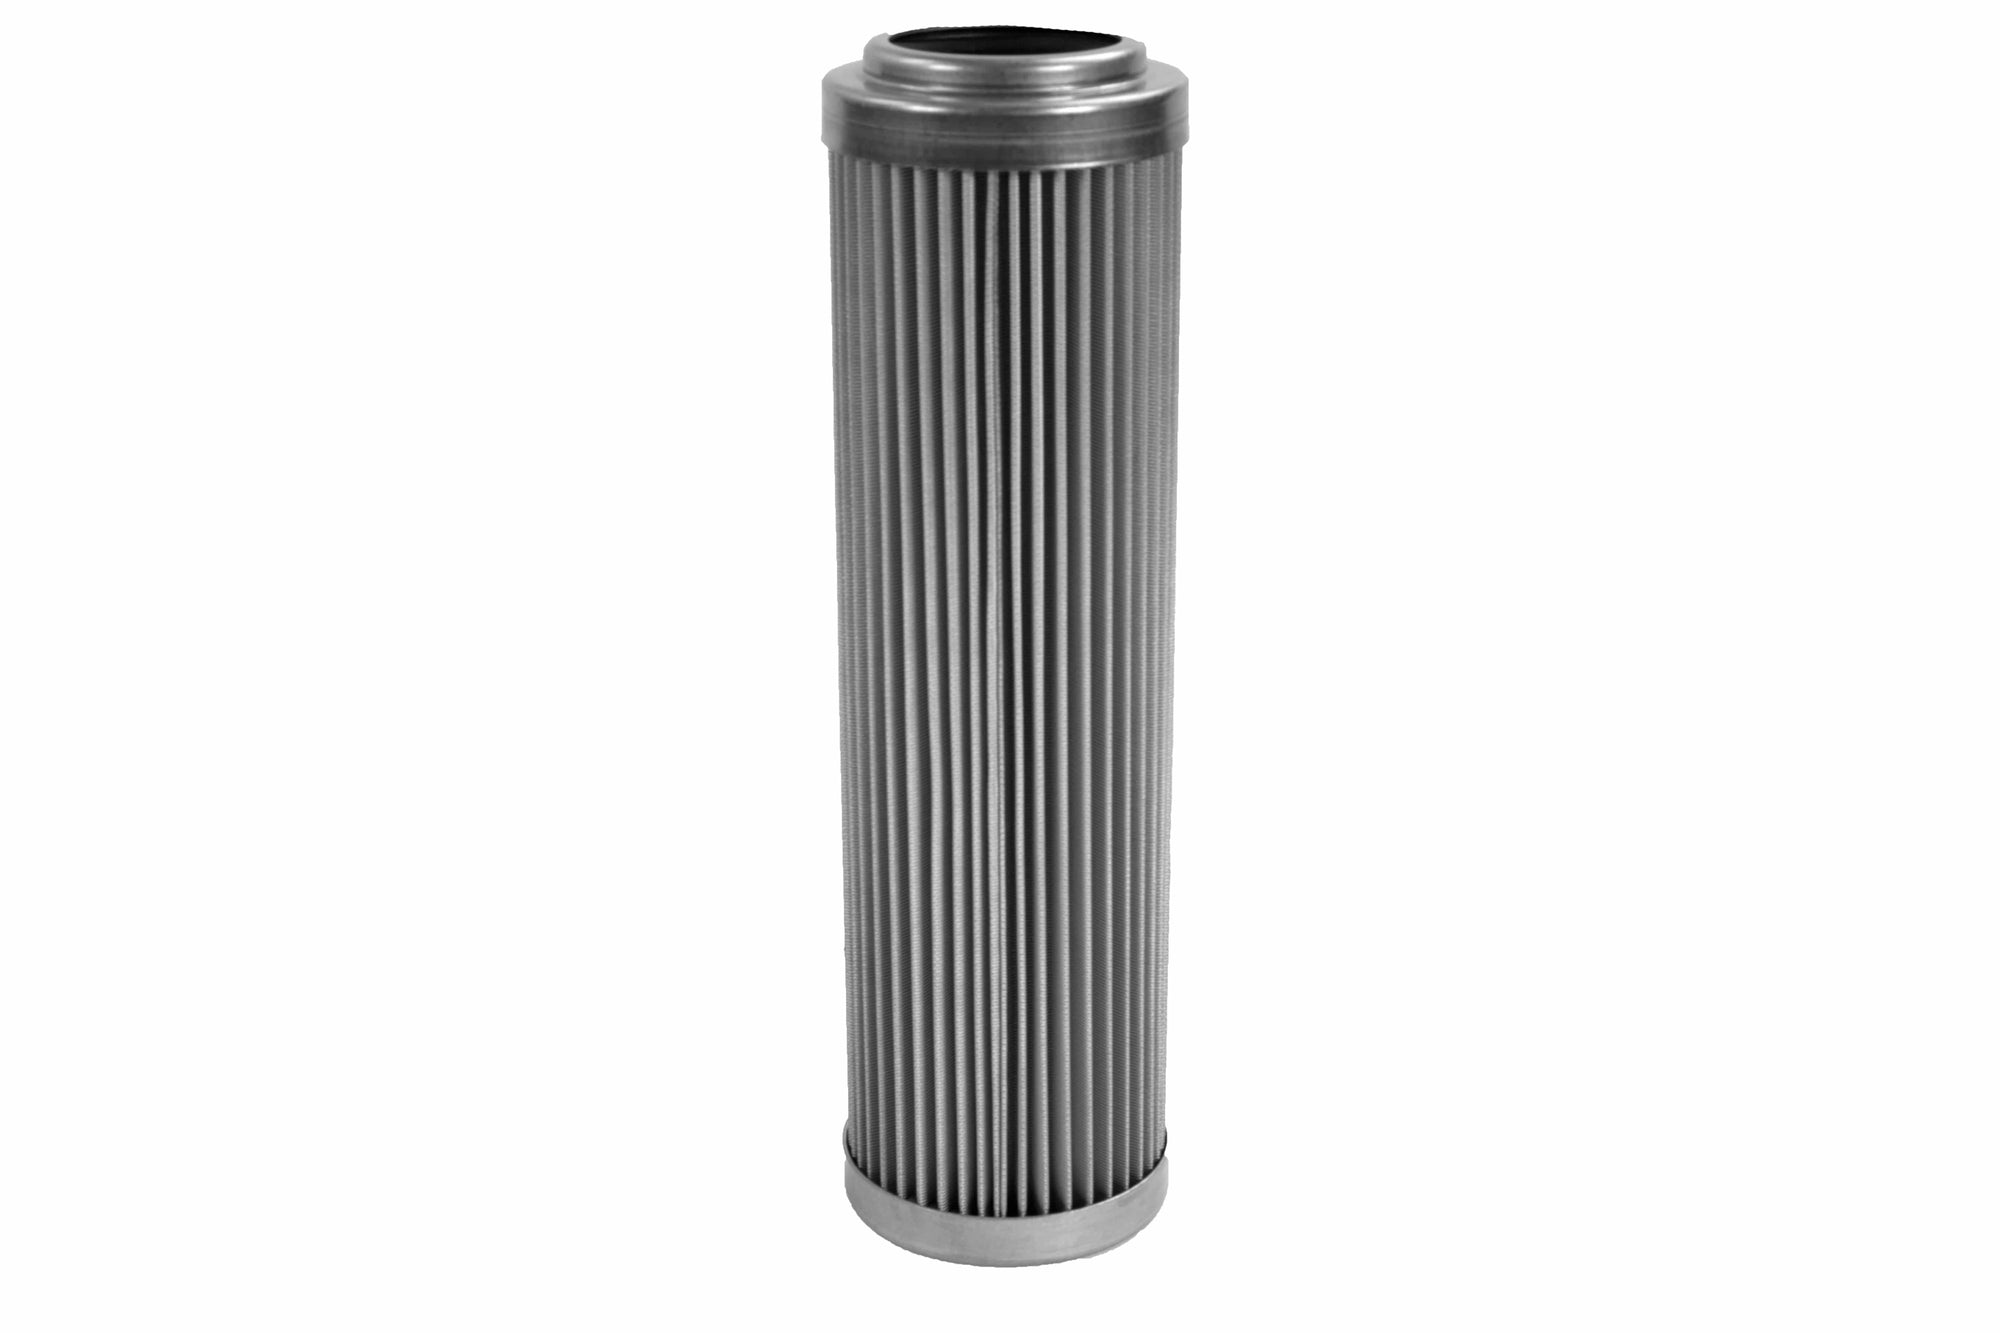 Aeromotive 40 Micron Stainless Steel Element for ORB-16 Filter 12663-Aeromotive-Motion Raceworks